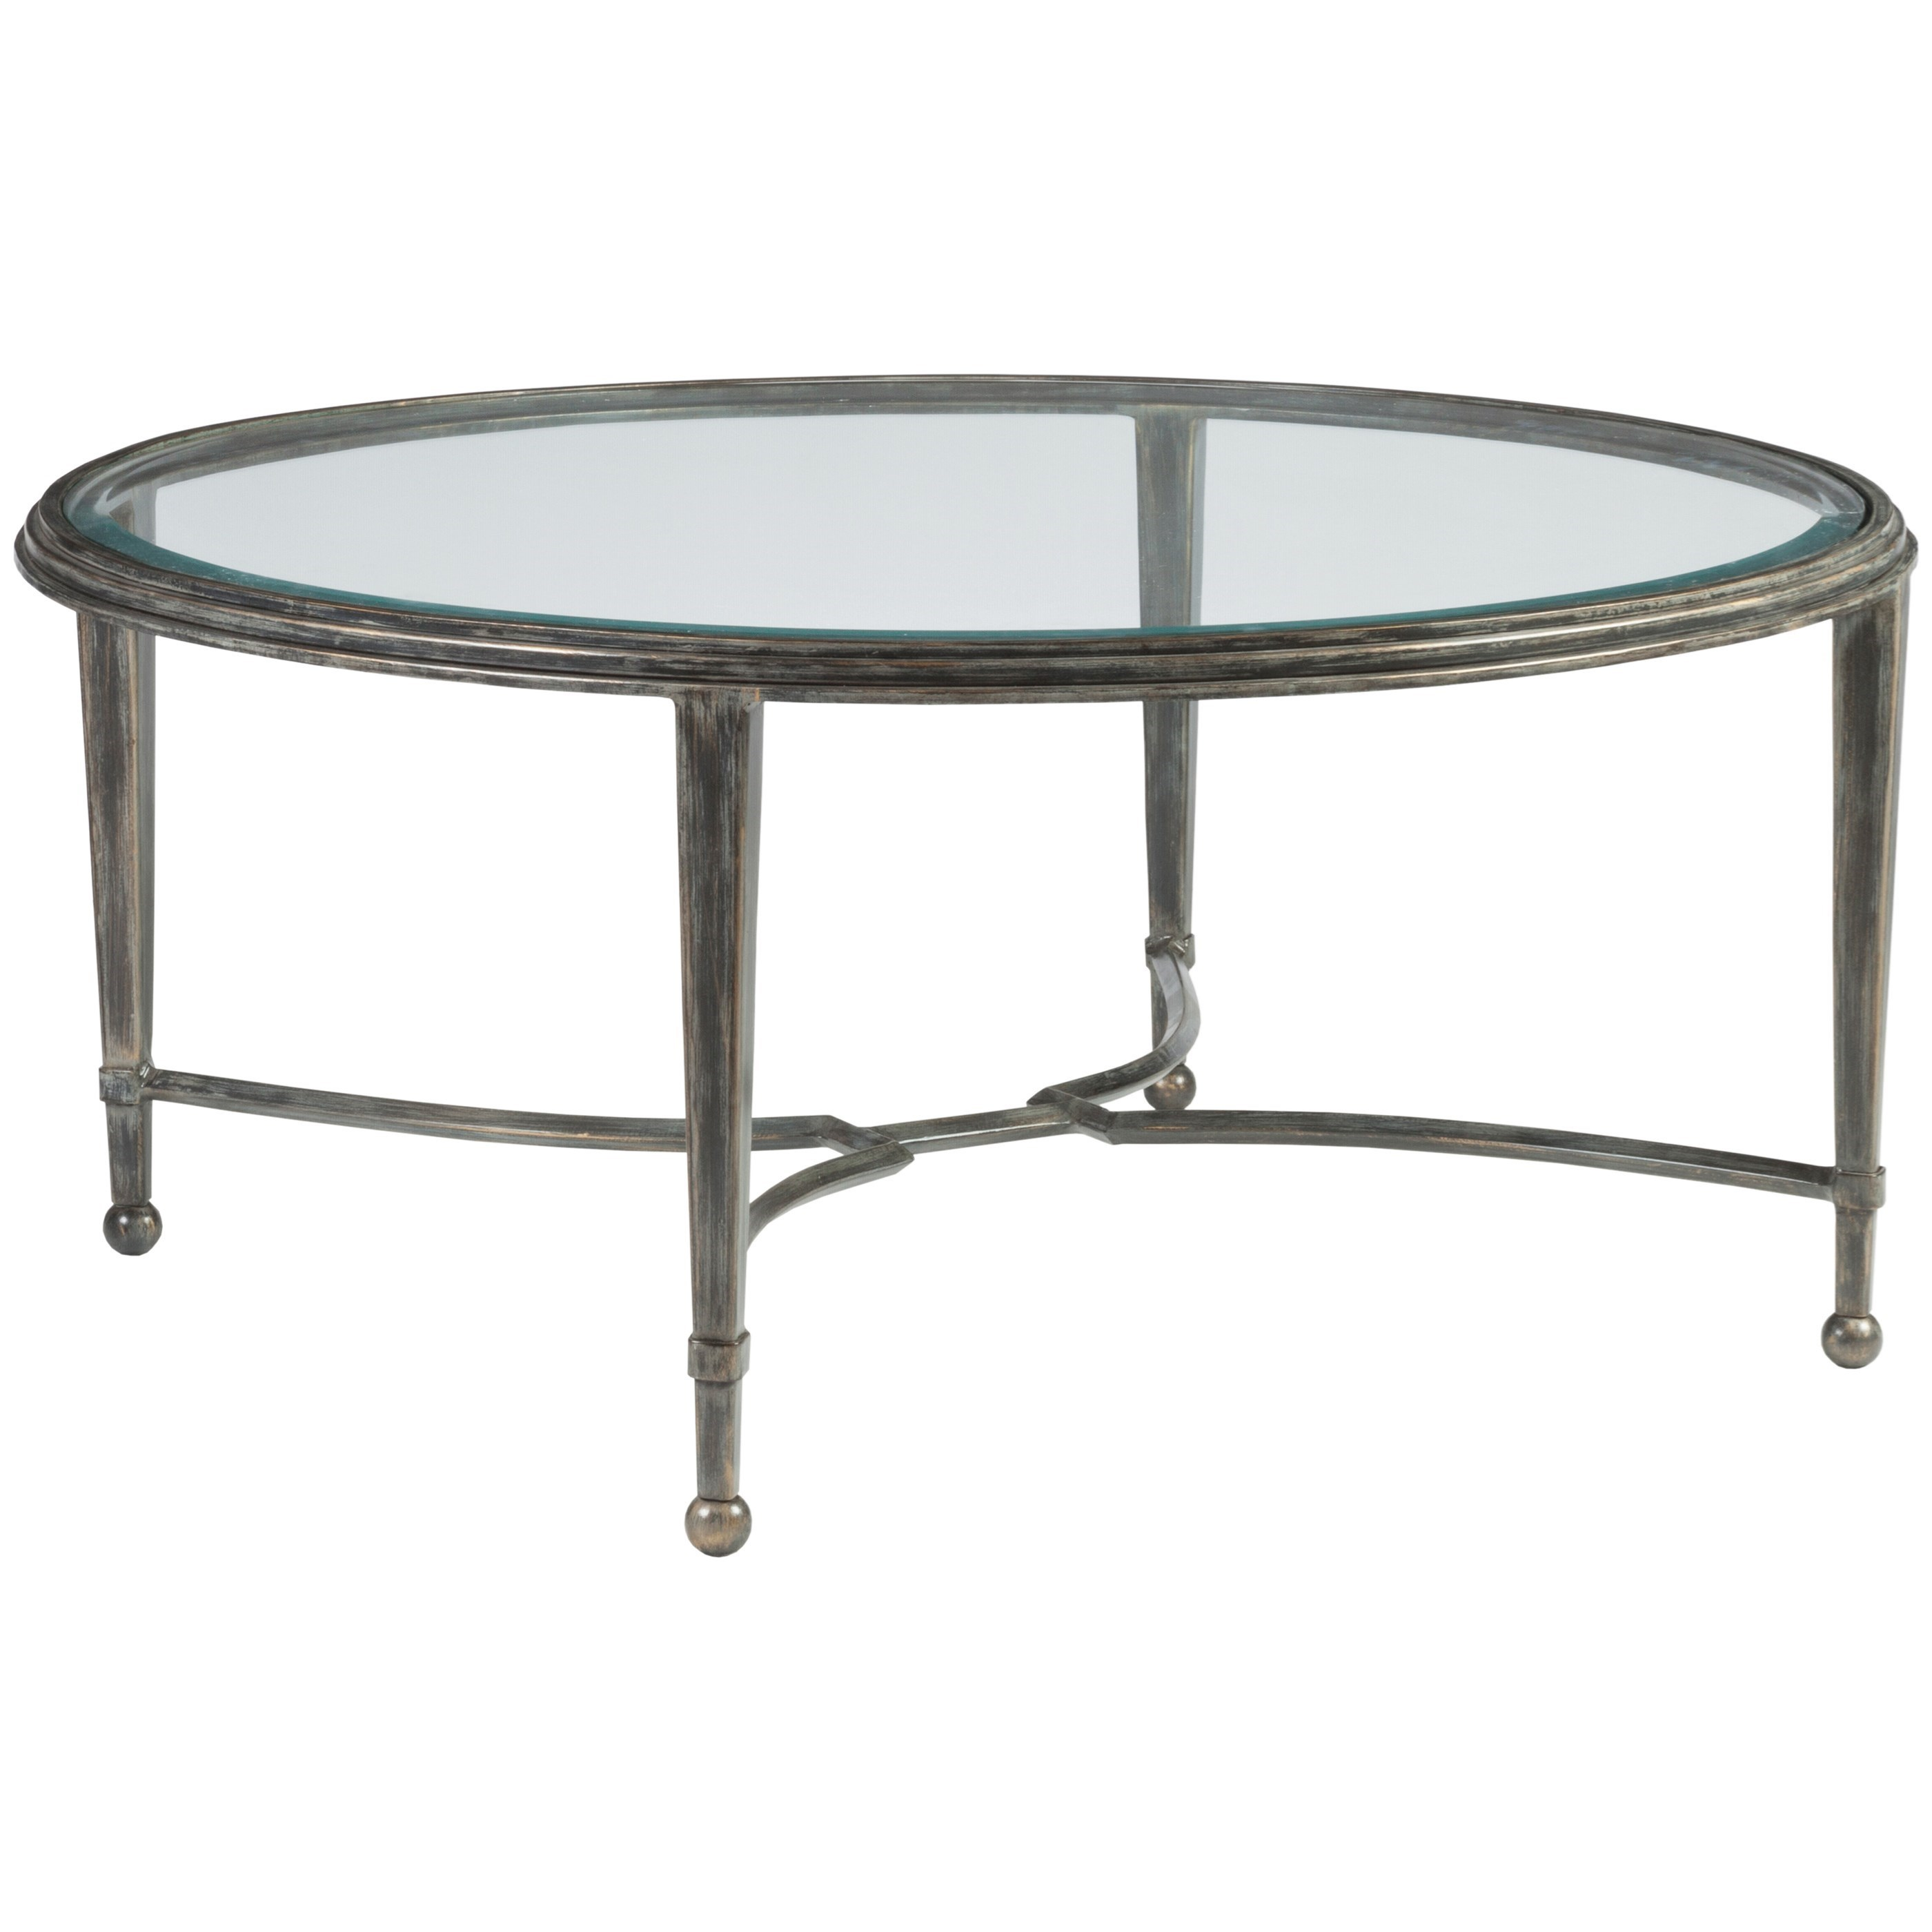 Metal Designs Sangiovese Round Cocktail Table by Artistica at Baer's Furniture